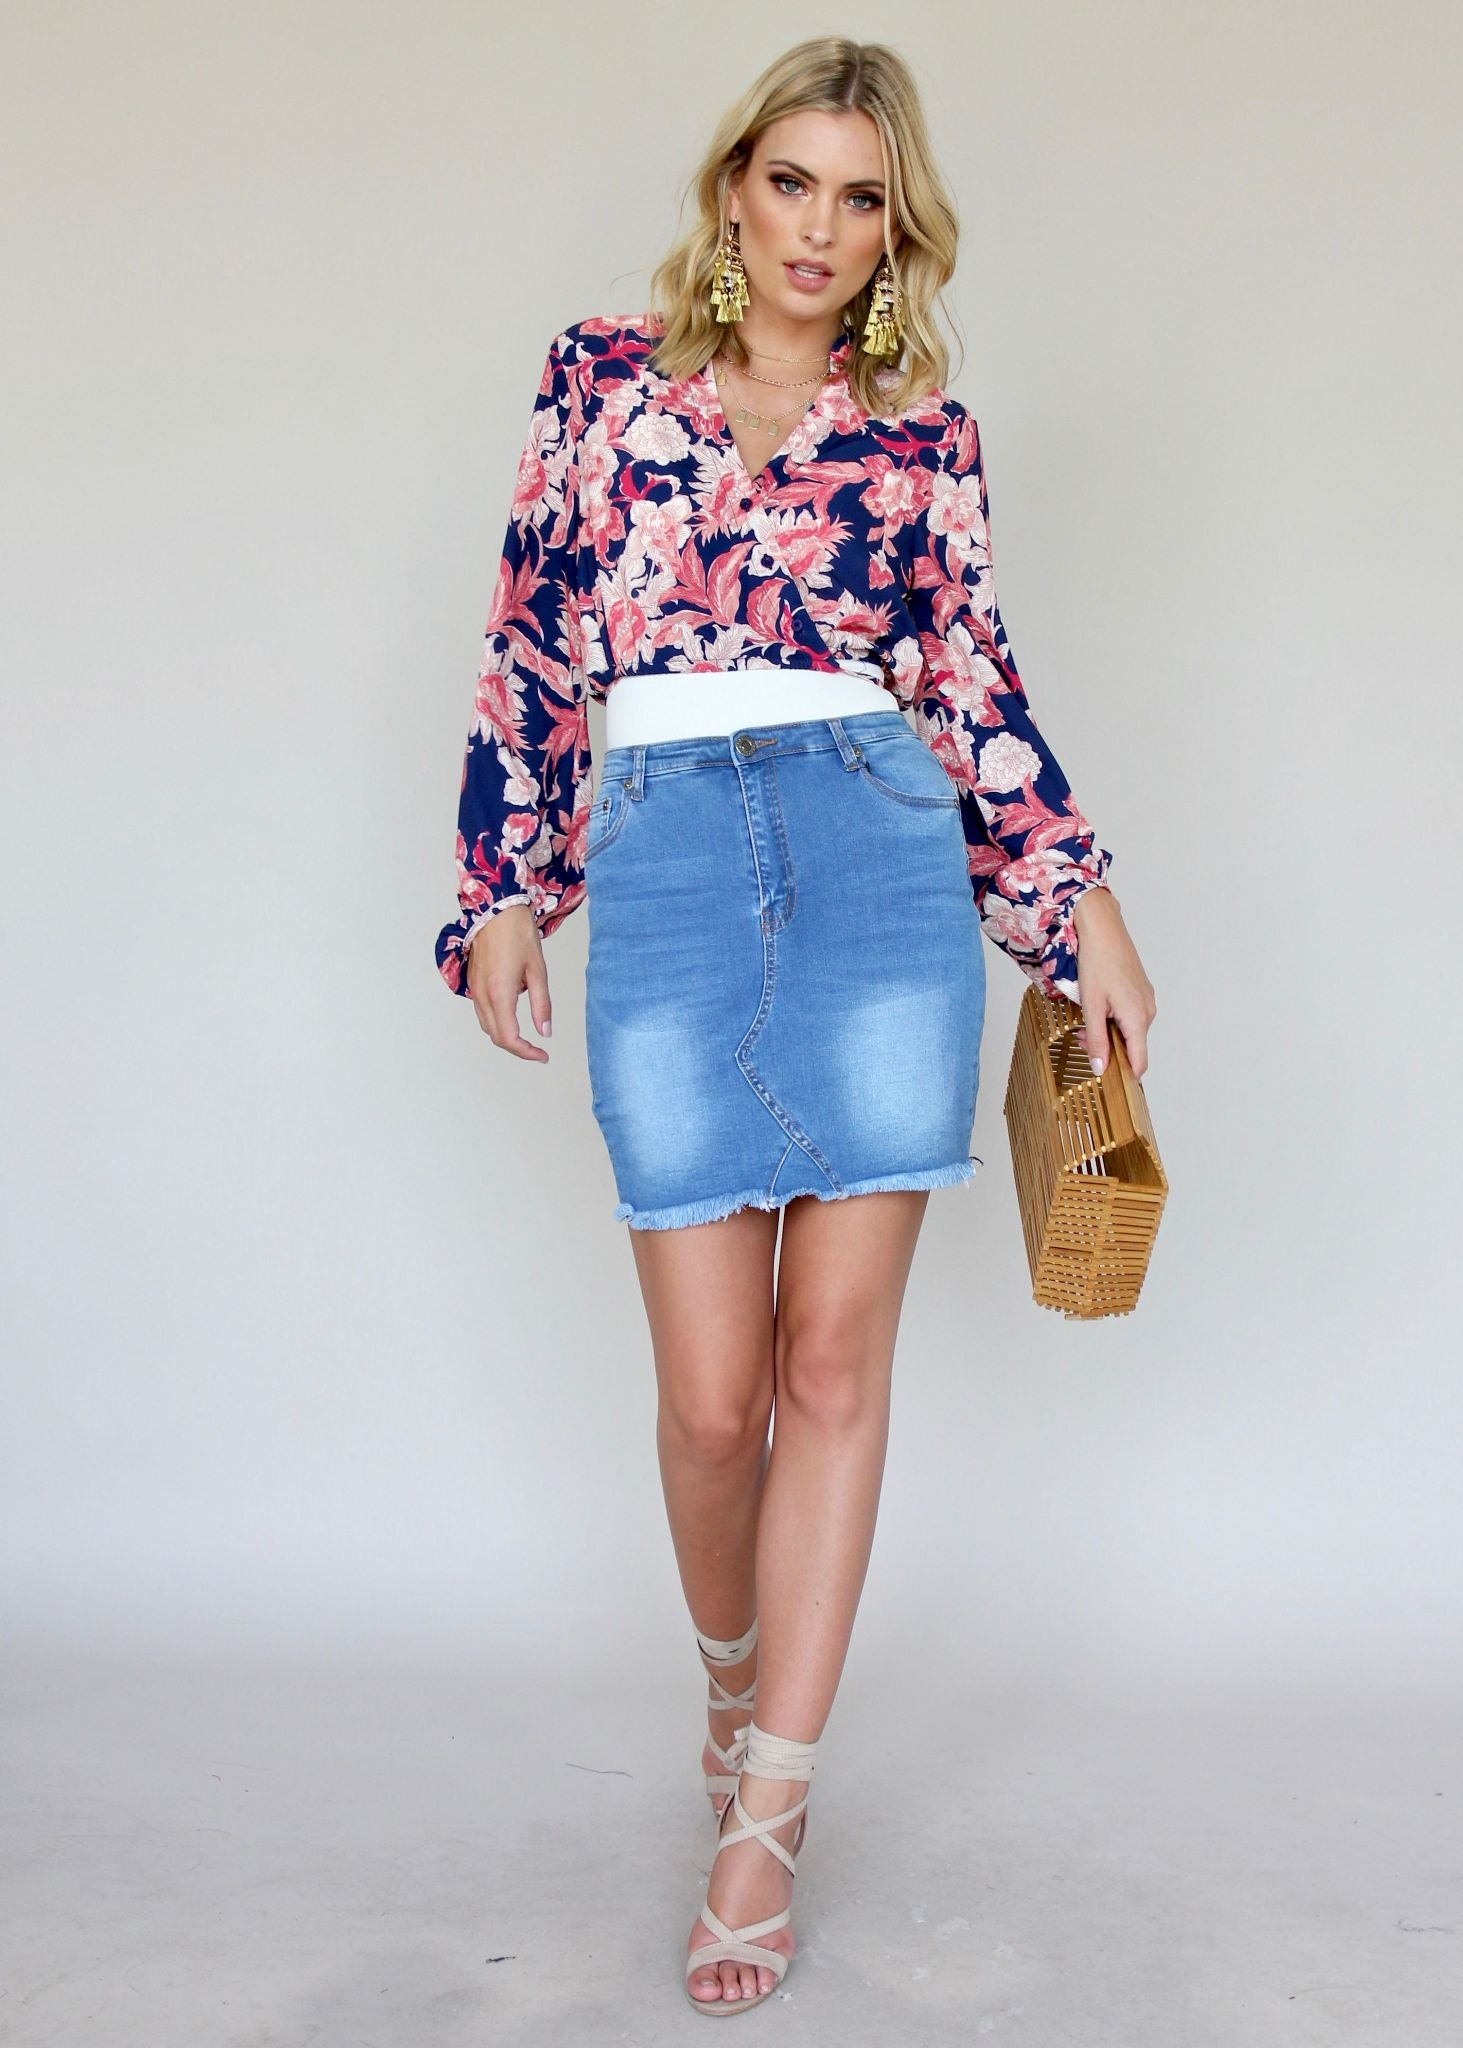 Sleevin' Around Blouse - Navy Bloom